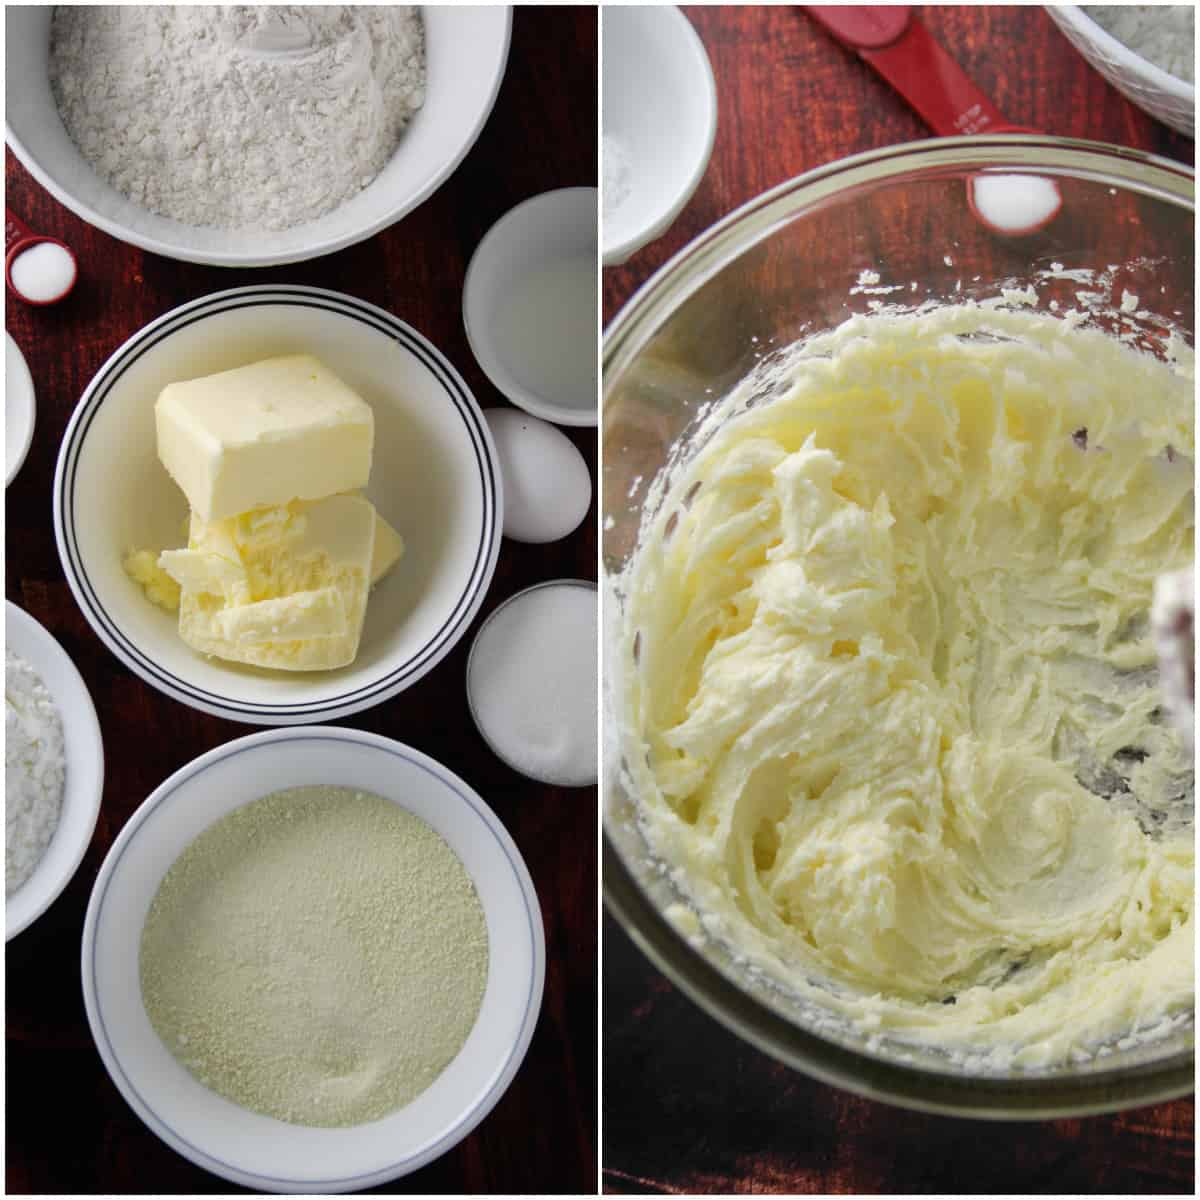 A collage showing the ingredients for butter cookies and the creaming of the butter and sugar.